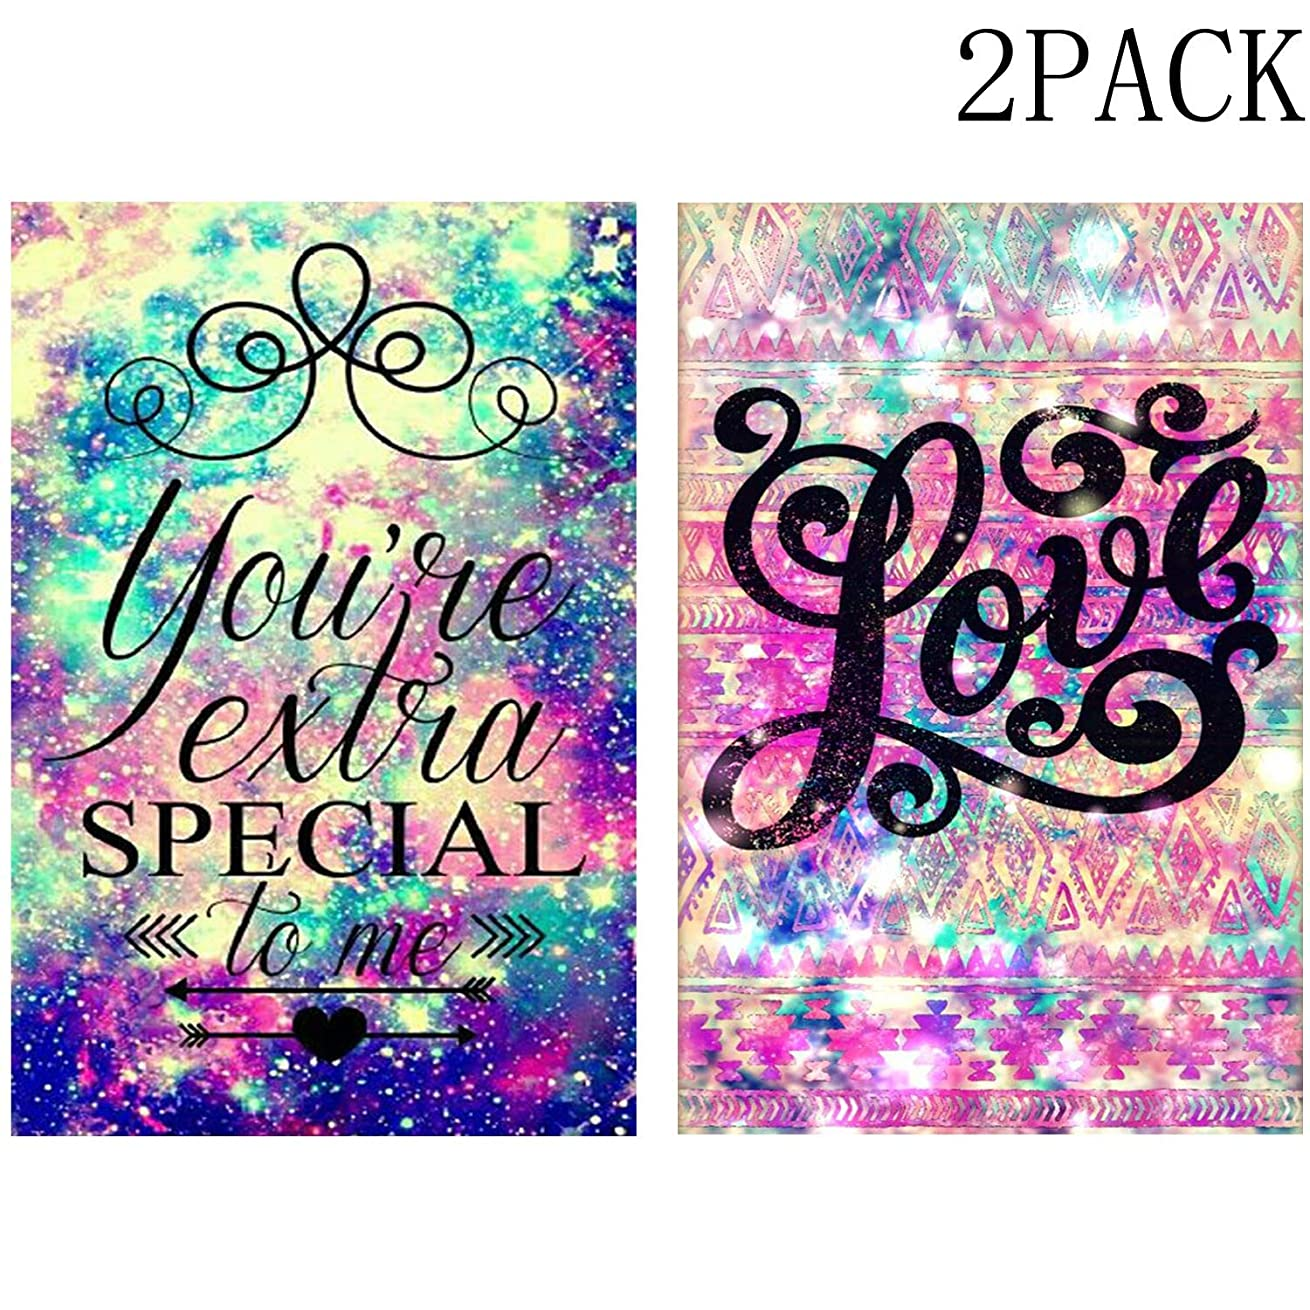 DIY 5D Diamond Paint by Number for Adults Kit,Colorful Starry Sky You're Extra Special to me and Love Wedding Gift Diamond Embroidery Paintings for Home Wall Decor 2PACK (11.8X15.7in-W25+W26)